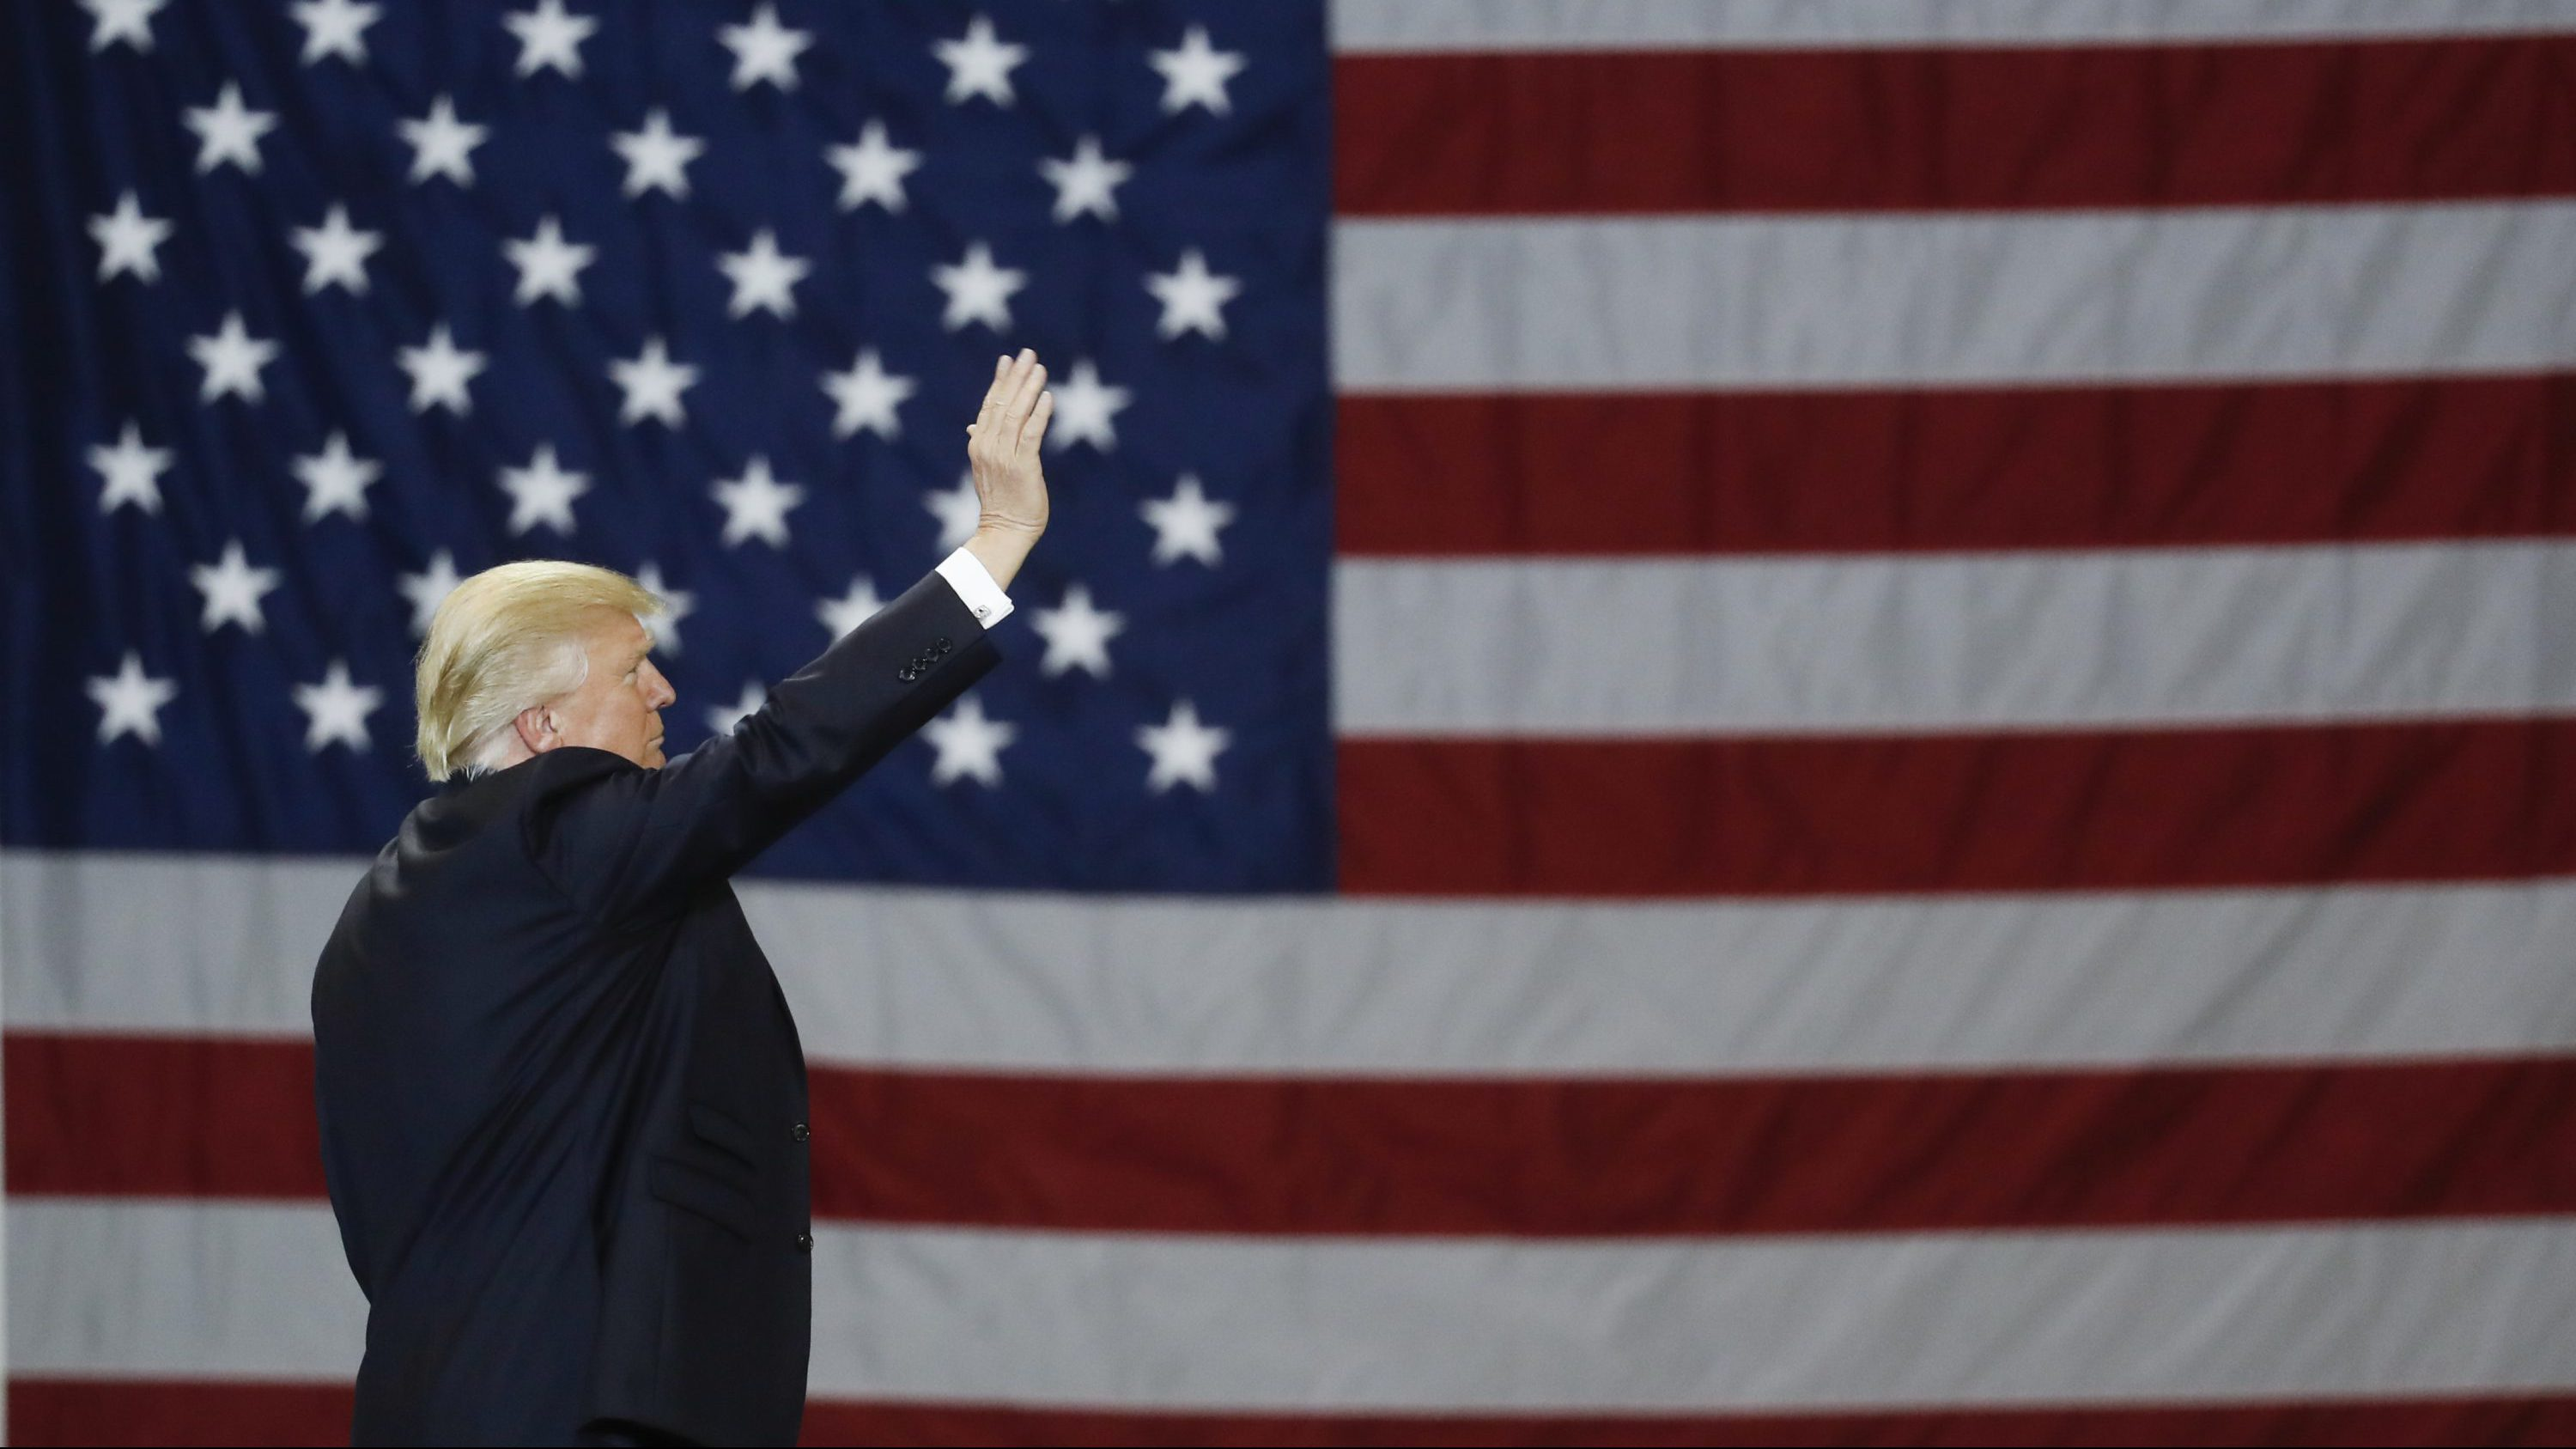 President Donald Trump waves in front of an American flag as he leaves after speaking during a rally at the Kentucky Exposition Center, Monday, March 20, 2017, in Louisville, Ky.